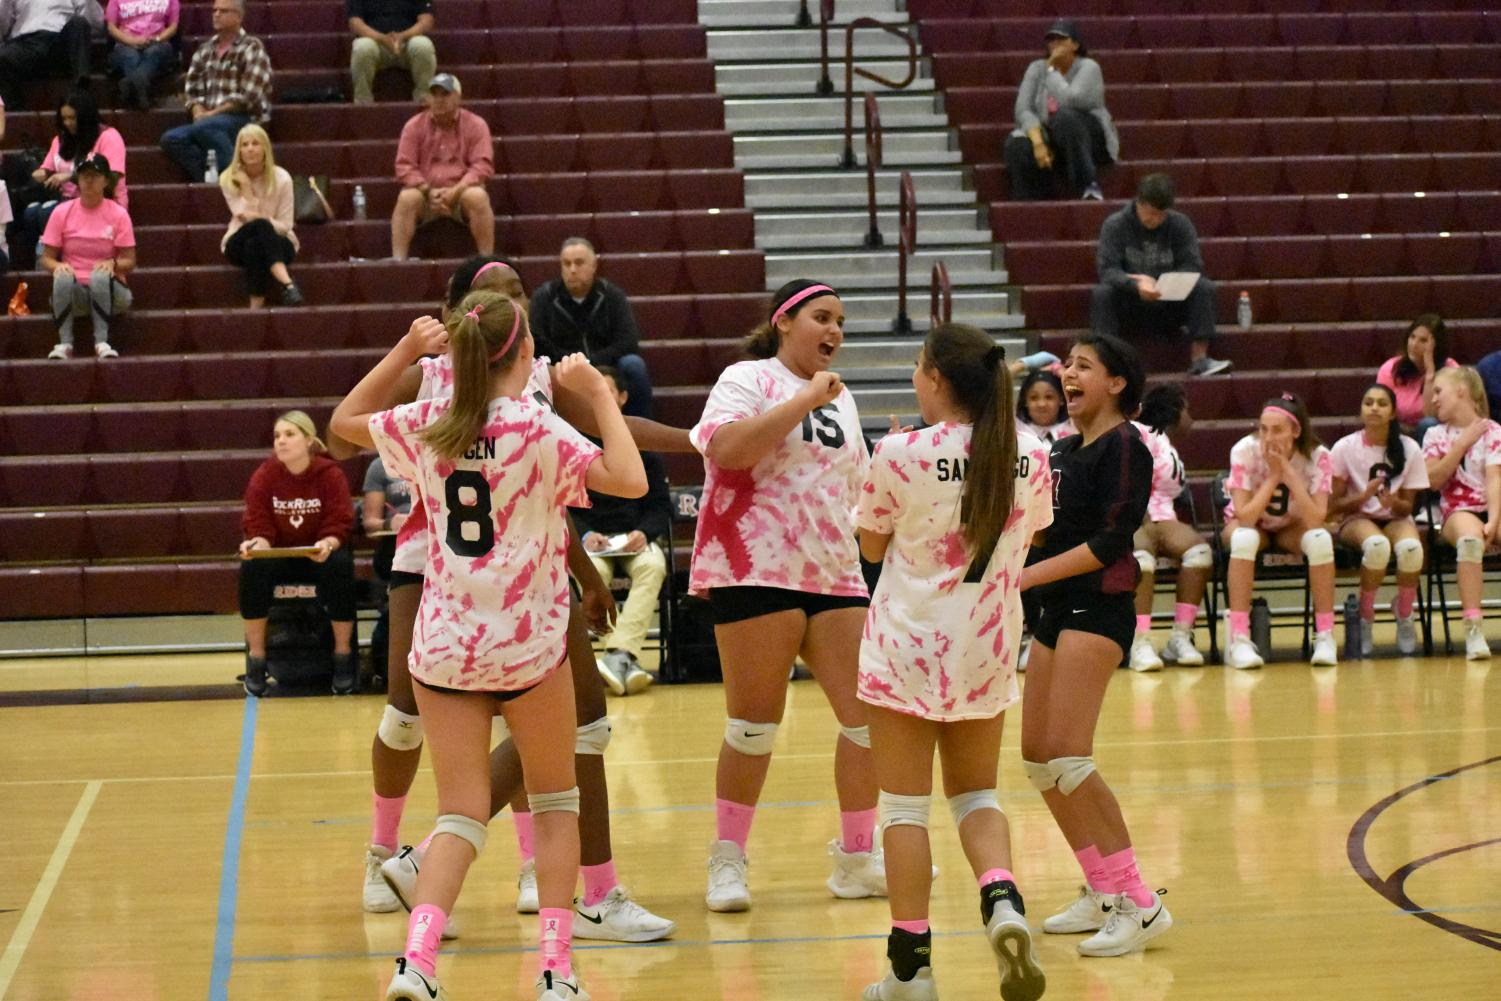 Players freshman Anika Engen, junior Madison Anderson, junior Jayden Thomas, junior Joanelys Santiago, and senior Kiran Patel scream in joy as they score a point. The team made a comeback, scoring several points in a row.